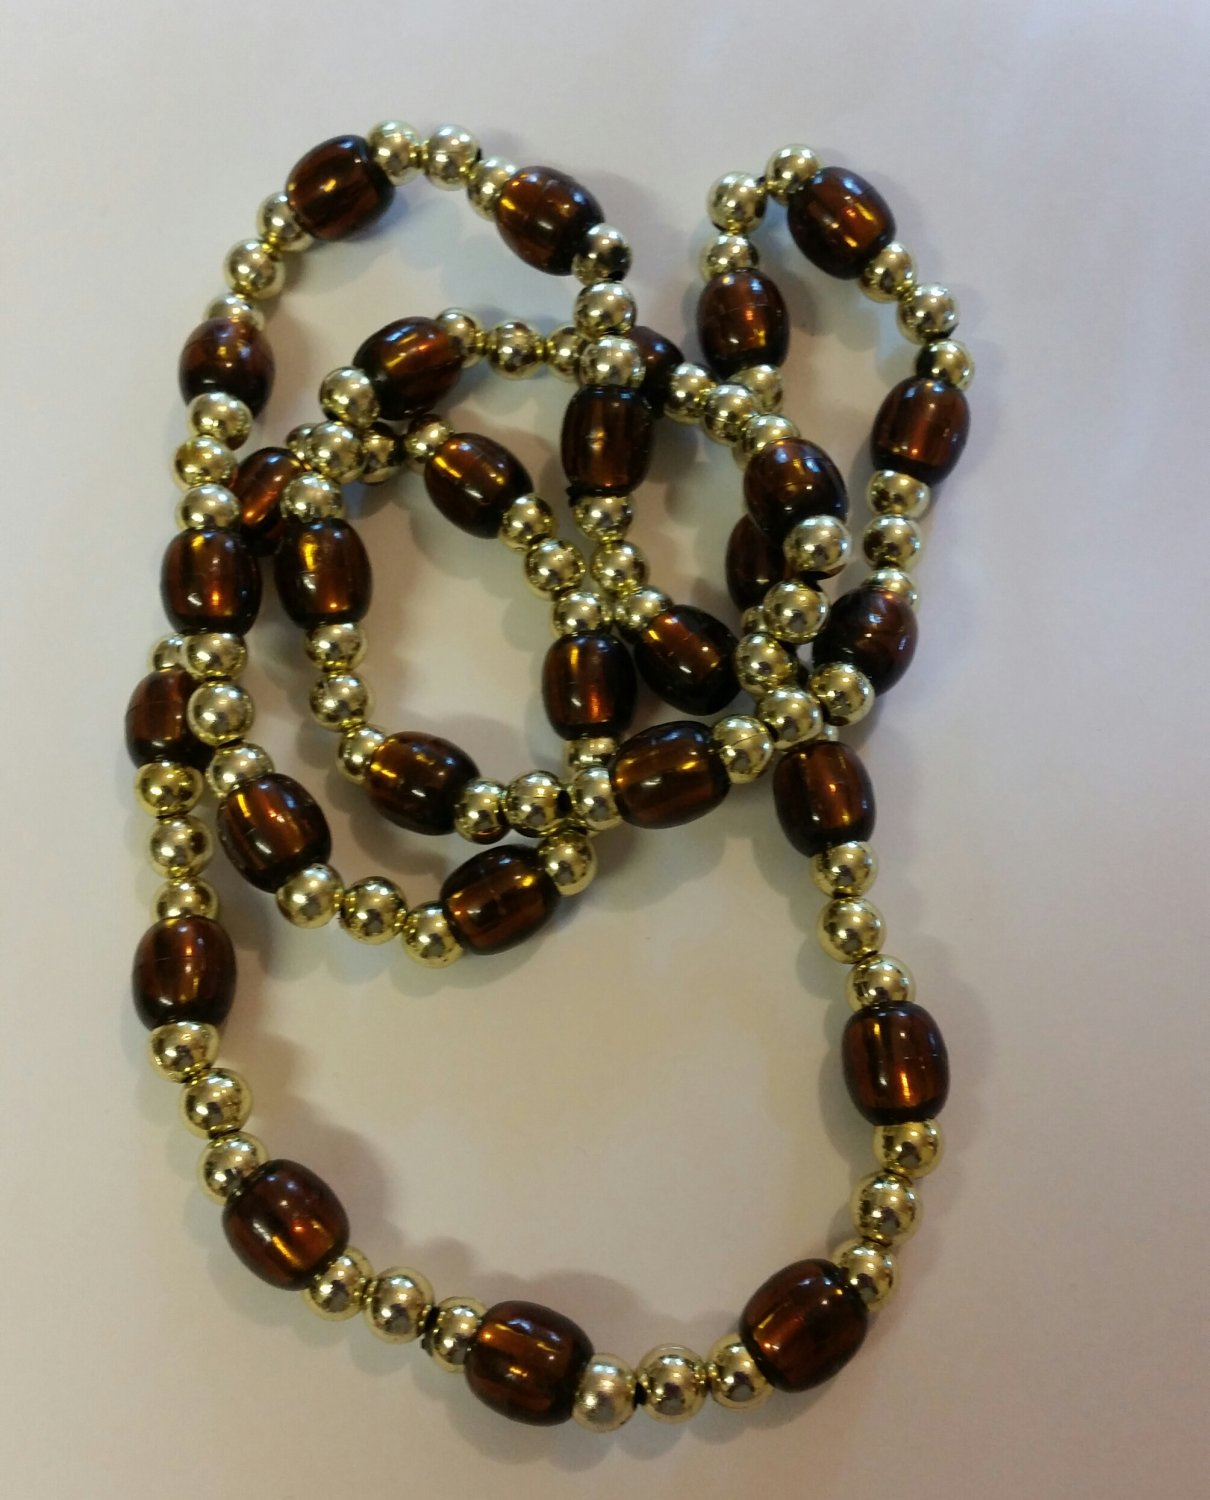 Brown and Gold Beaded Necklace handmade